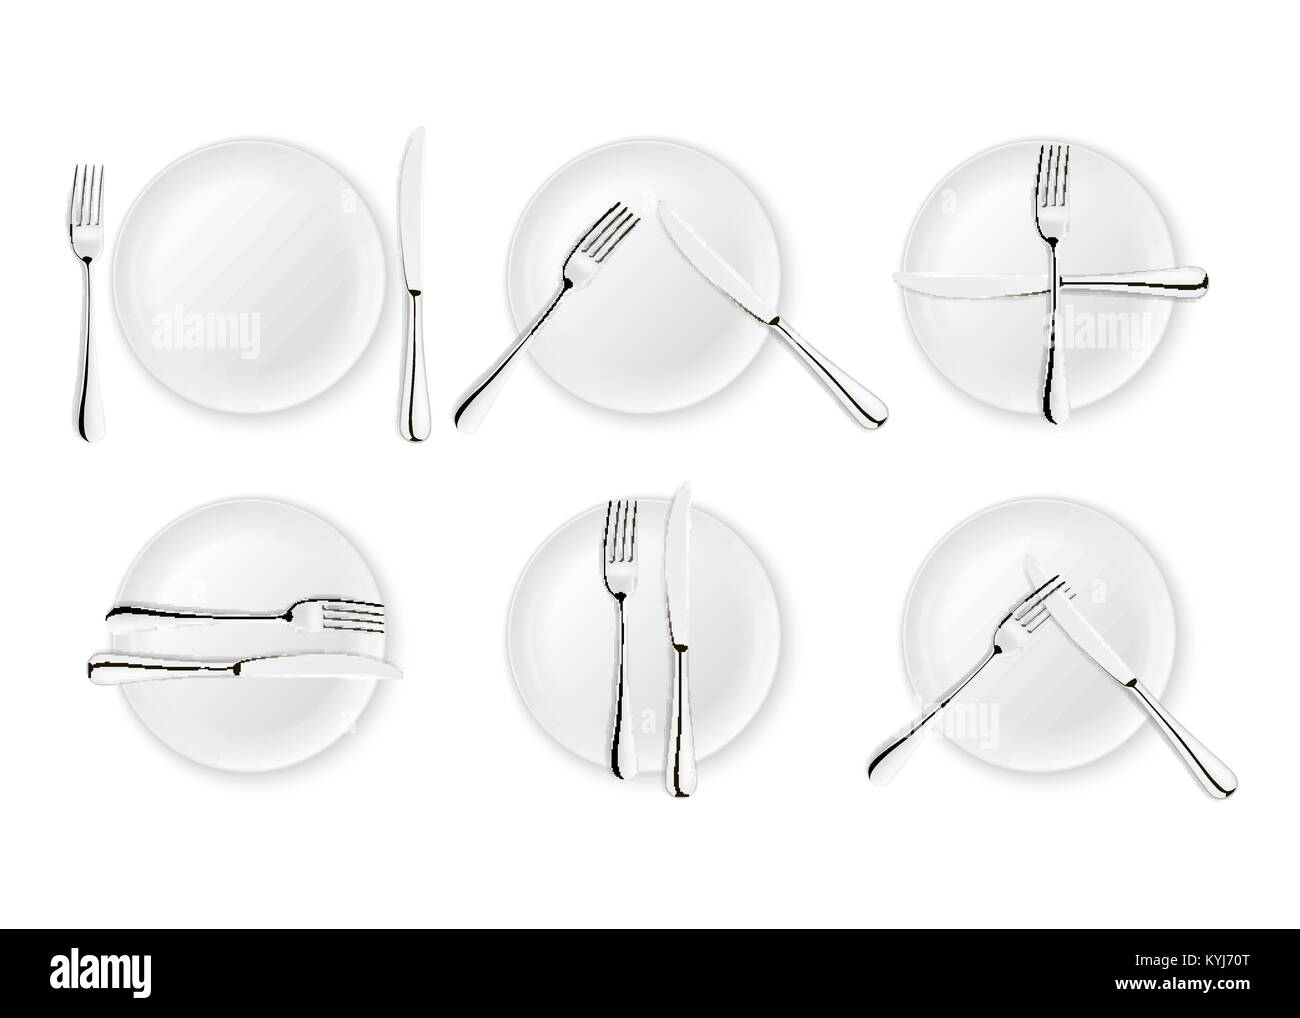 Realistic cutlery and signs of table etiquette, vector icons